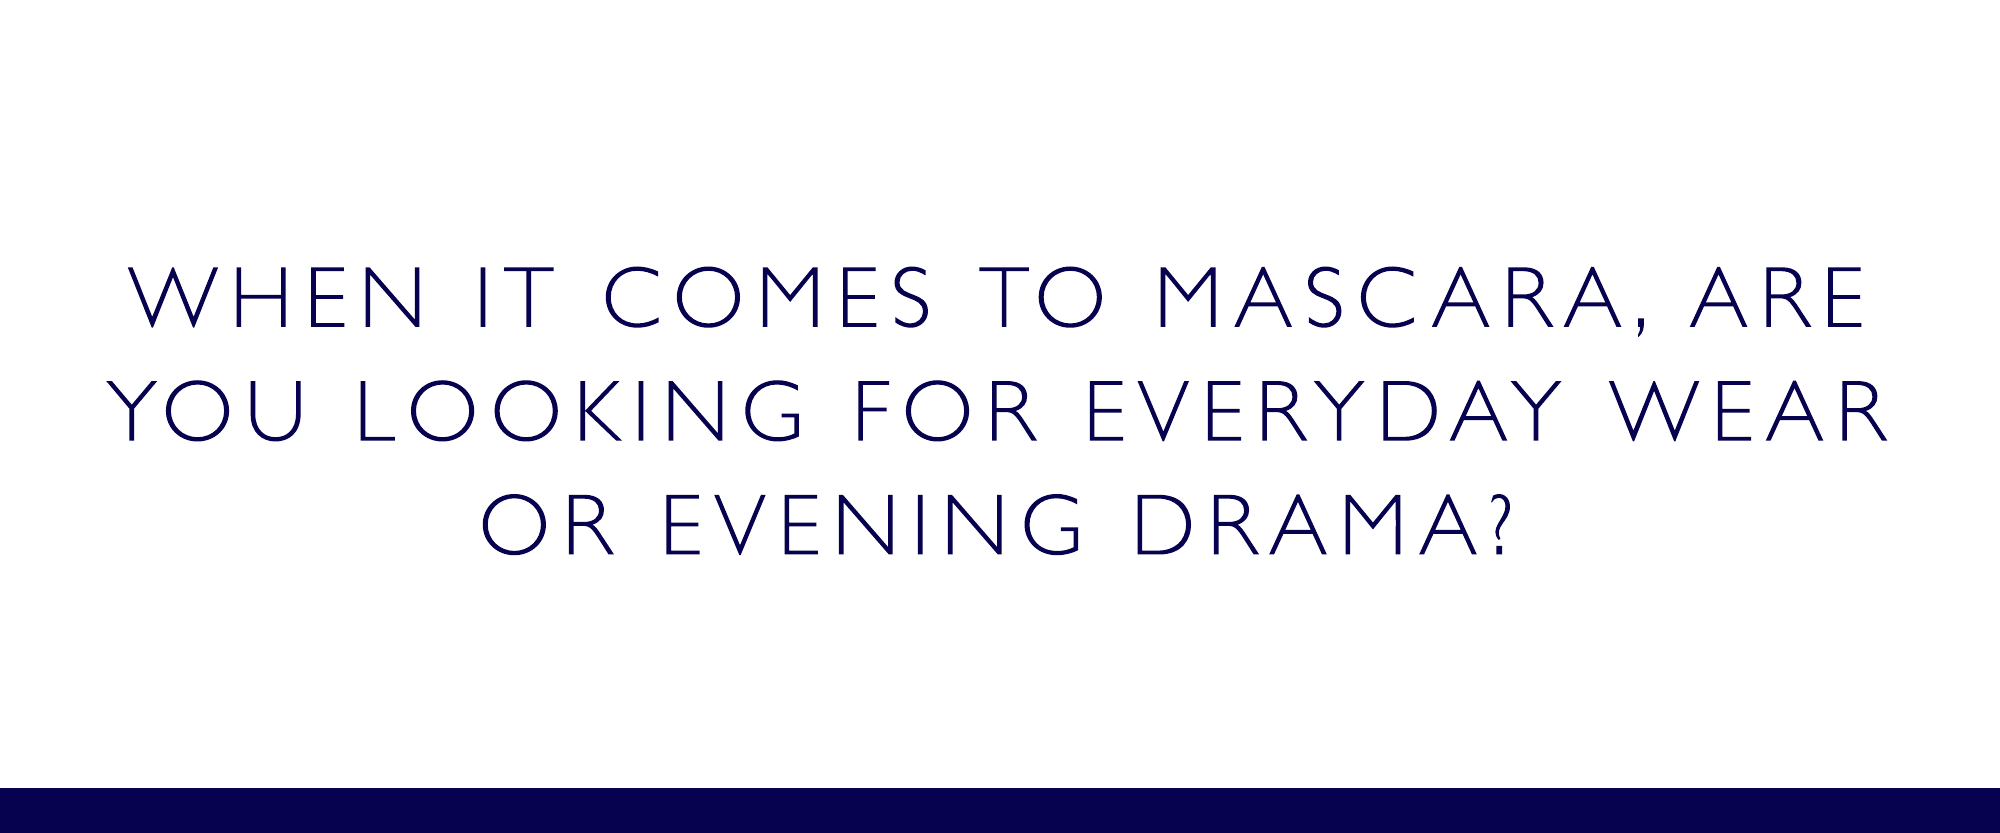 When it comes to mascara, are you looking for everyday wear or evening drama?